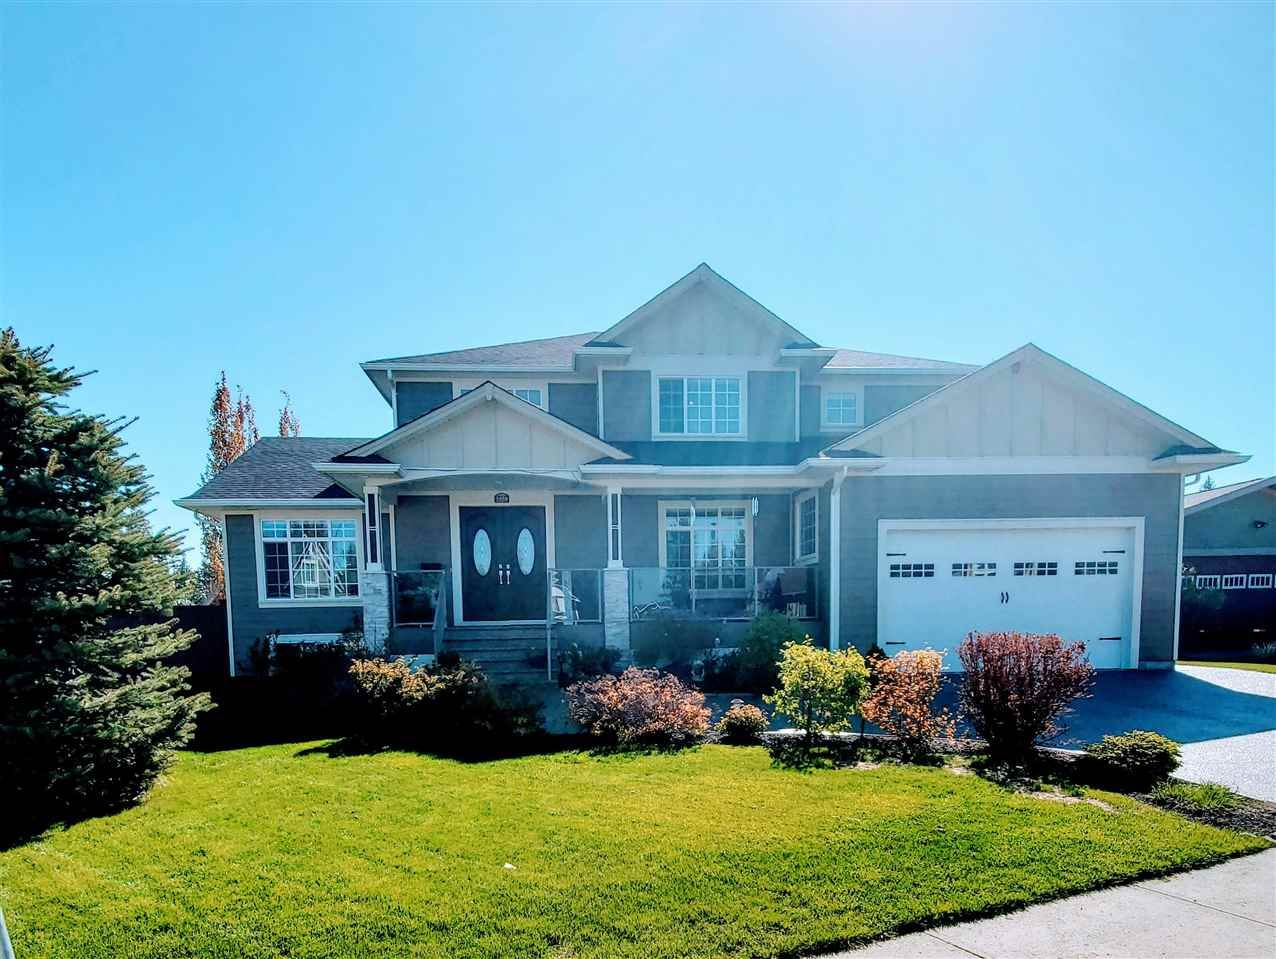 """Main Photo: 7535 HOUGH Place in Prince George: Lower College House for sale in """"MALASPINA RIDGE (COLLEGE HEIGHTS)"""" (PG City South (Zone 74))  : MLS®# R2583545"""